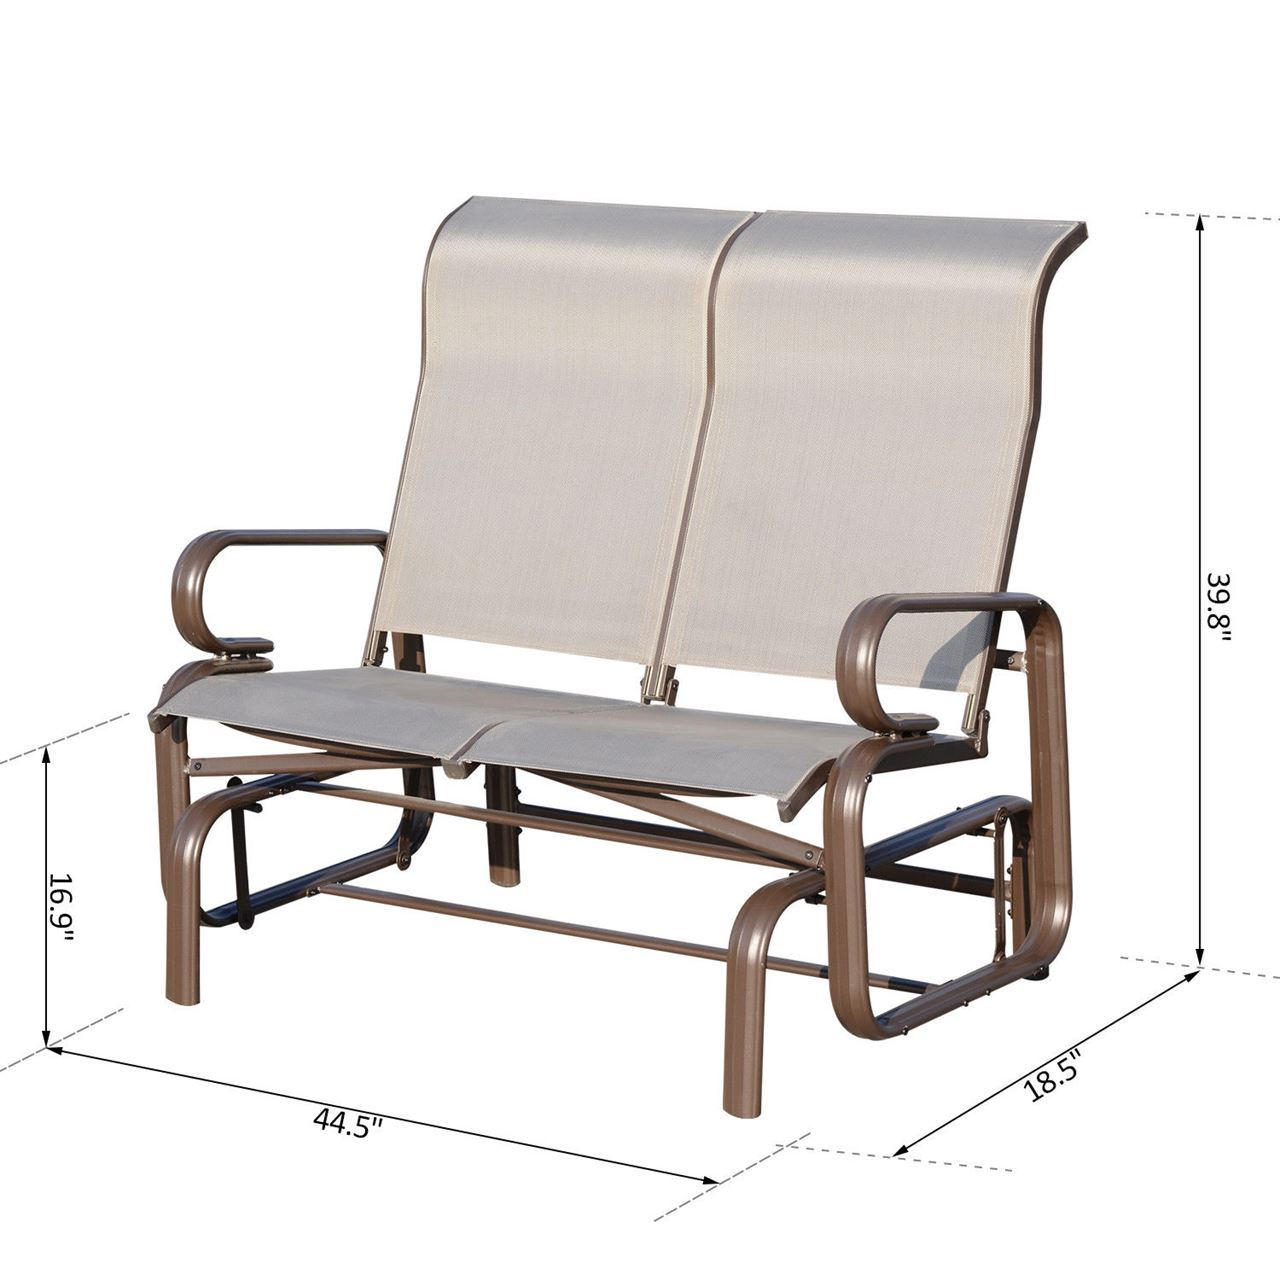 Outdoor Aluminum Double Glider Rocking Bench Swing Intended For Double Glider Benches With Cushion (Image 17 of 25)